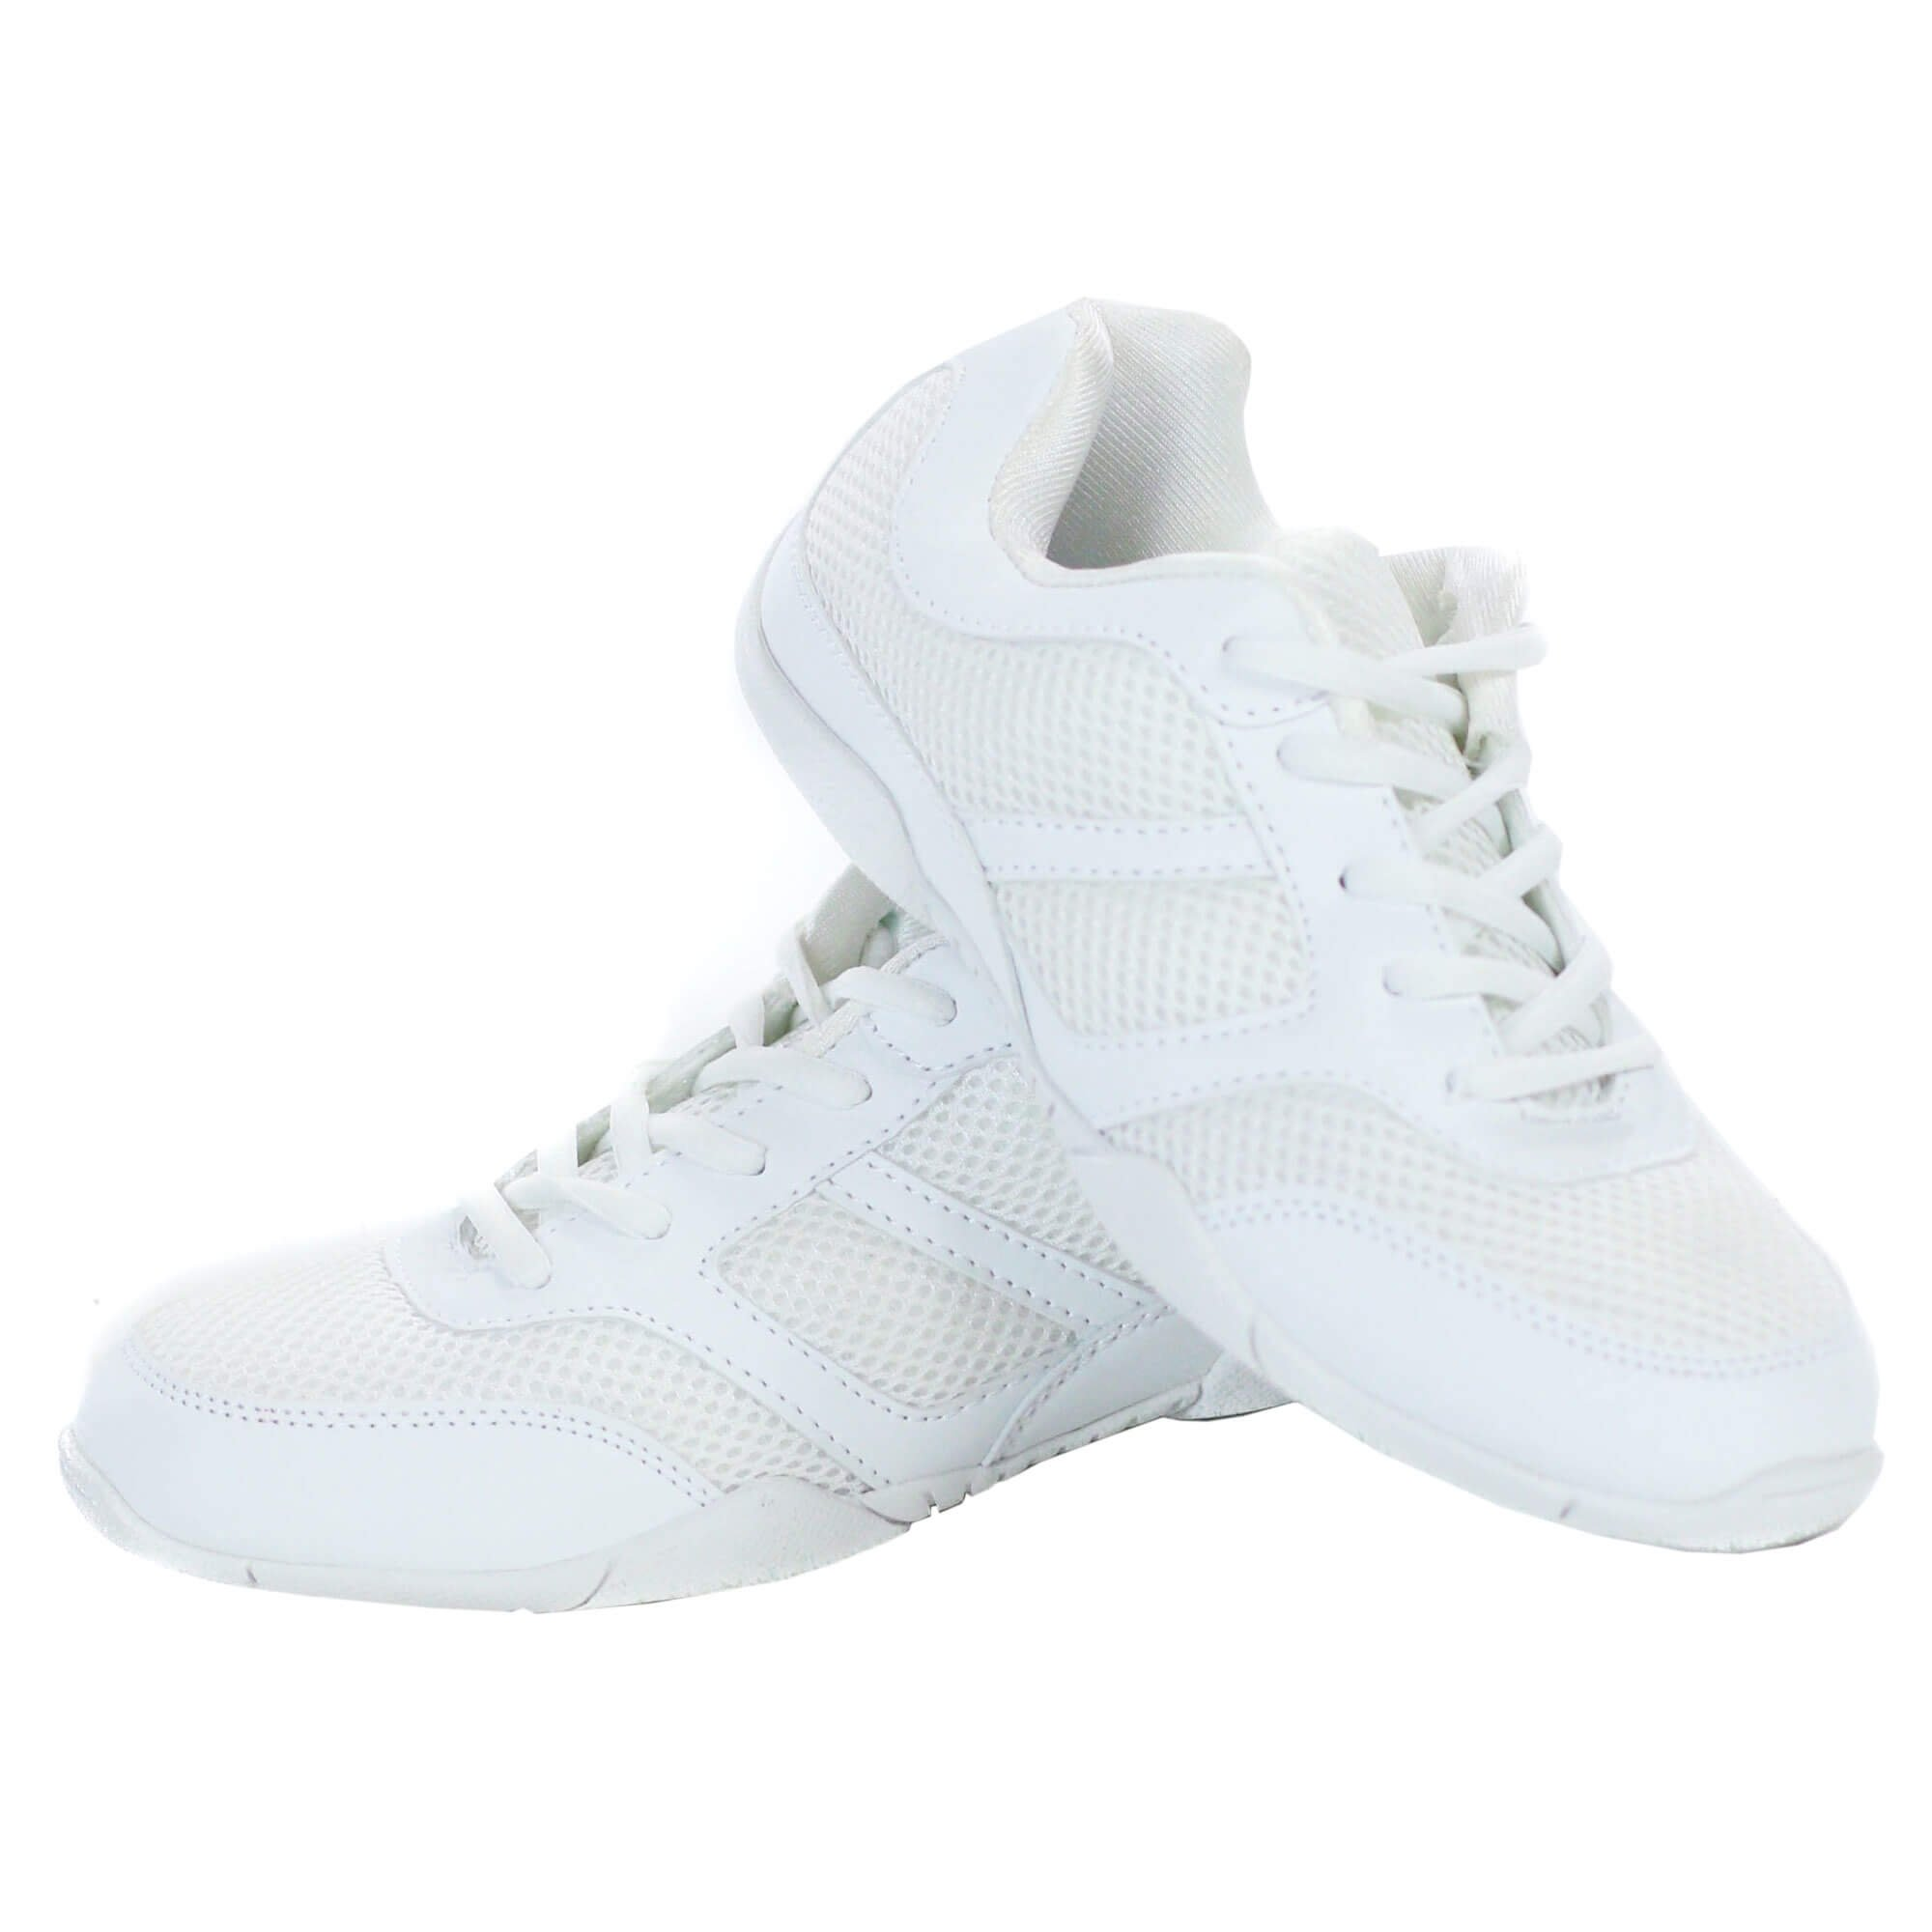 Danzcue Cheer Shoe